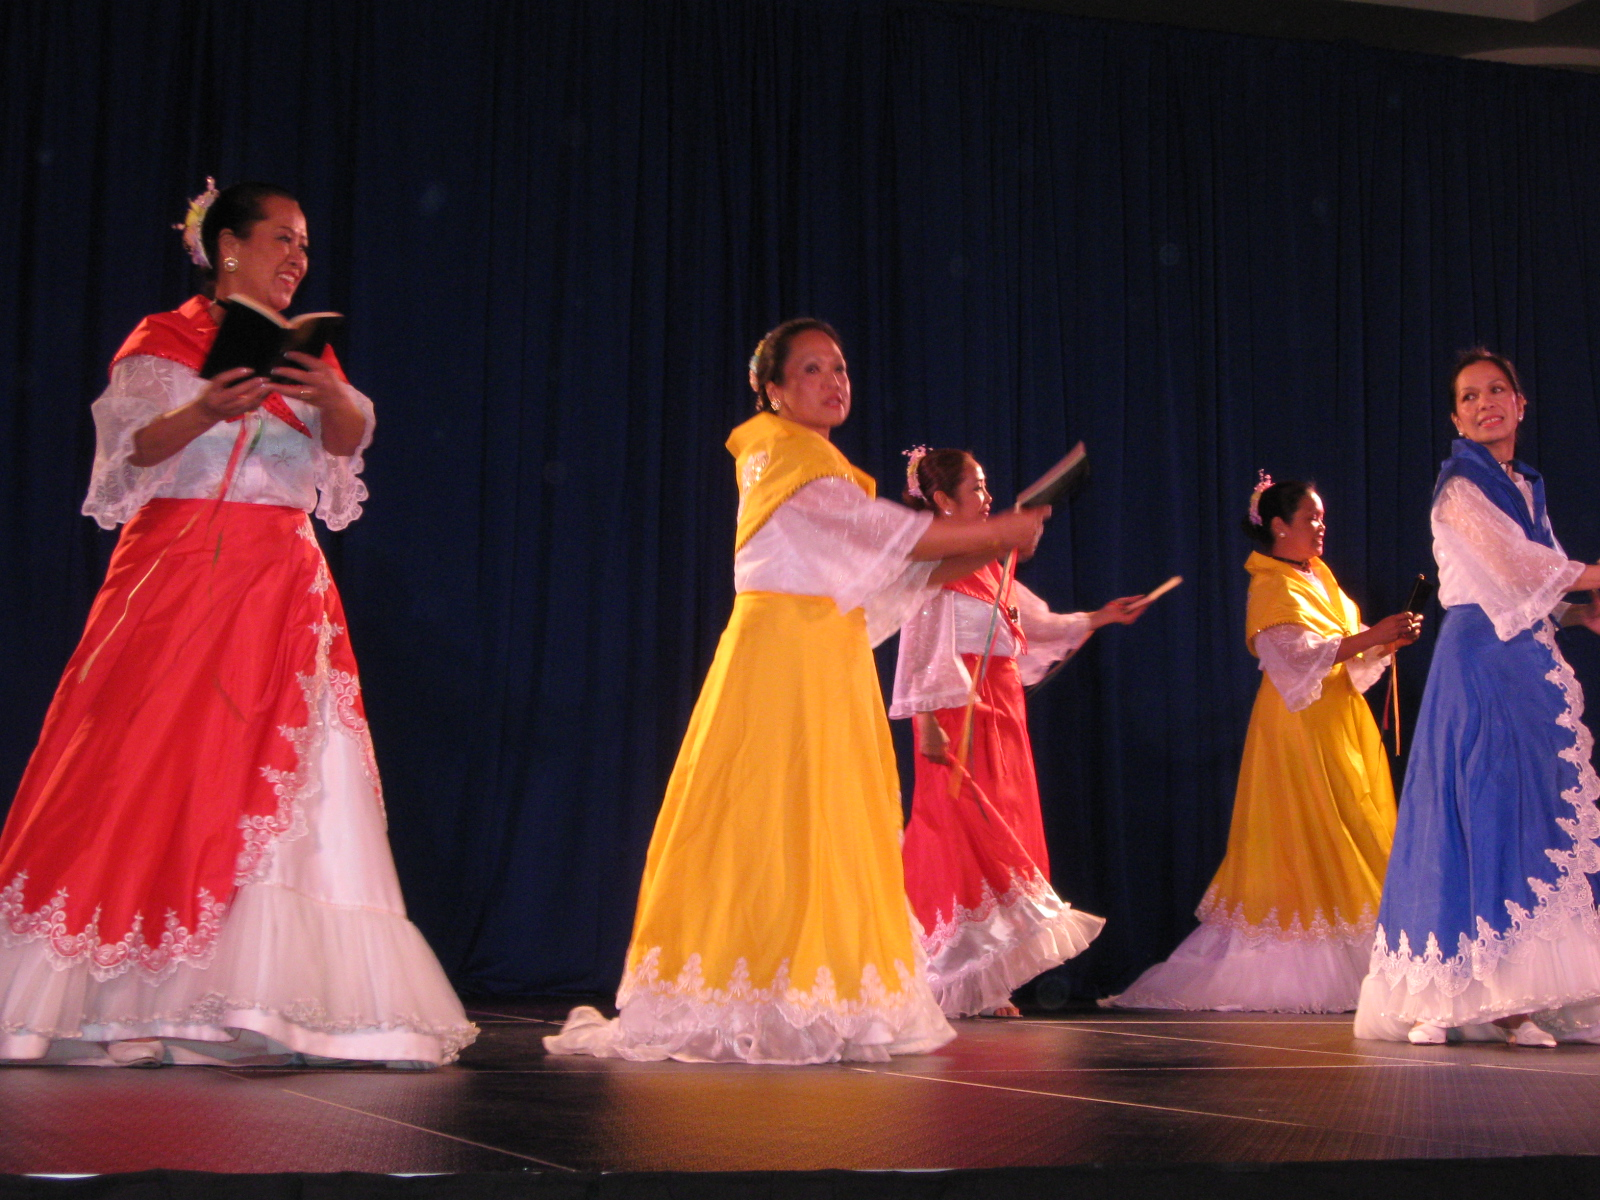 kuratsa philippines folk dance In this bibliography plan, i will focus on traditional philippine dances related to   one of the clips of the kuratsa[25], a filipino folk dance, that i saw on the site.